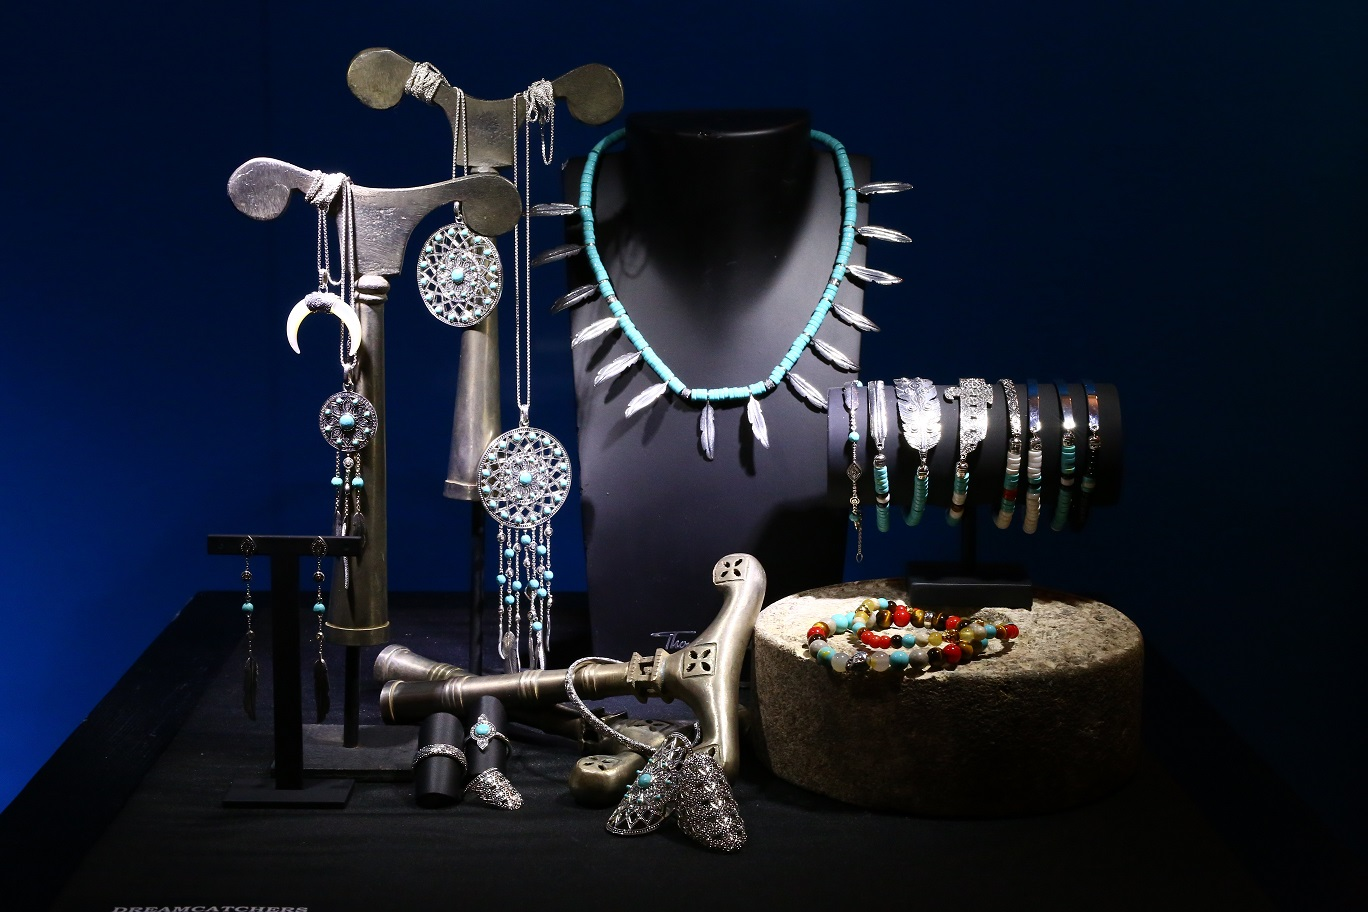 Dream catchers, feathers and colored bracelets - New collection from Thomas Sabo - and great inspiration for jewelry display design ideas.